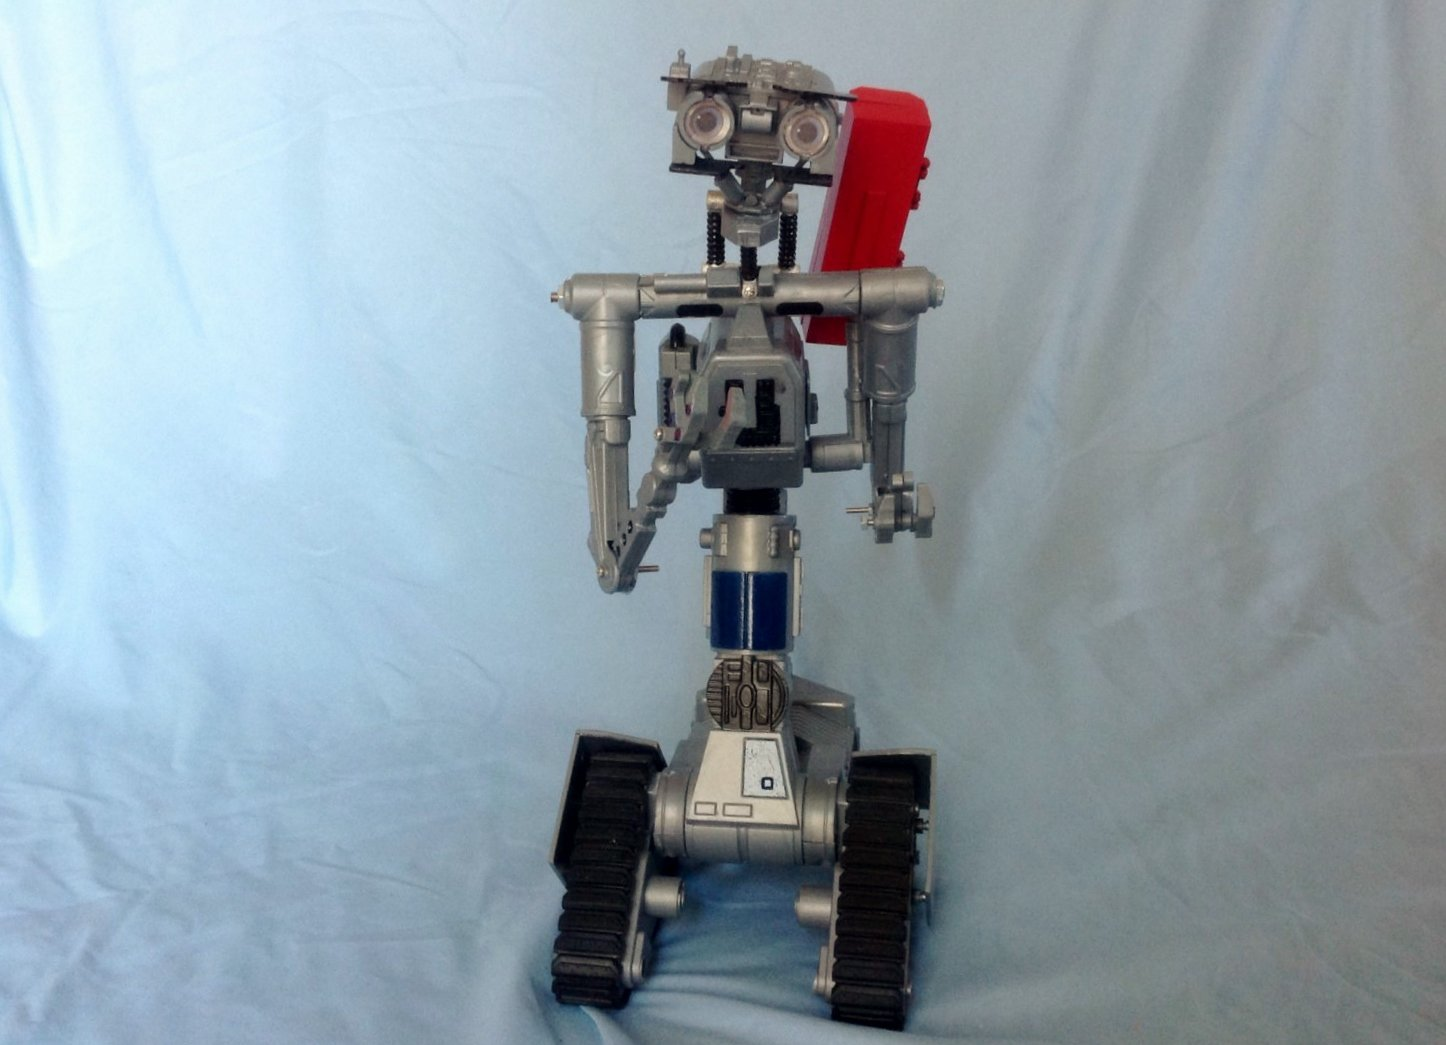 Sold Out Johnny 5 Short Circuit 2 Toy Robot Replica Movie Prop Shortcircuit2